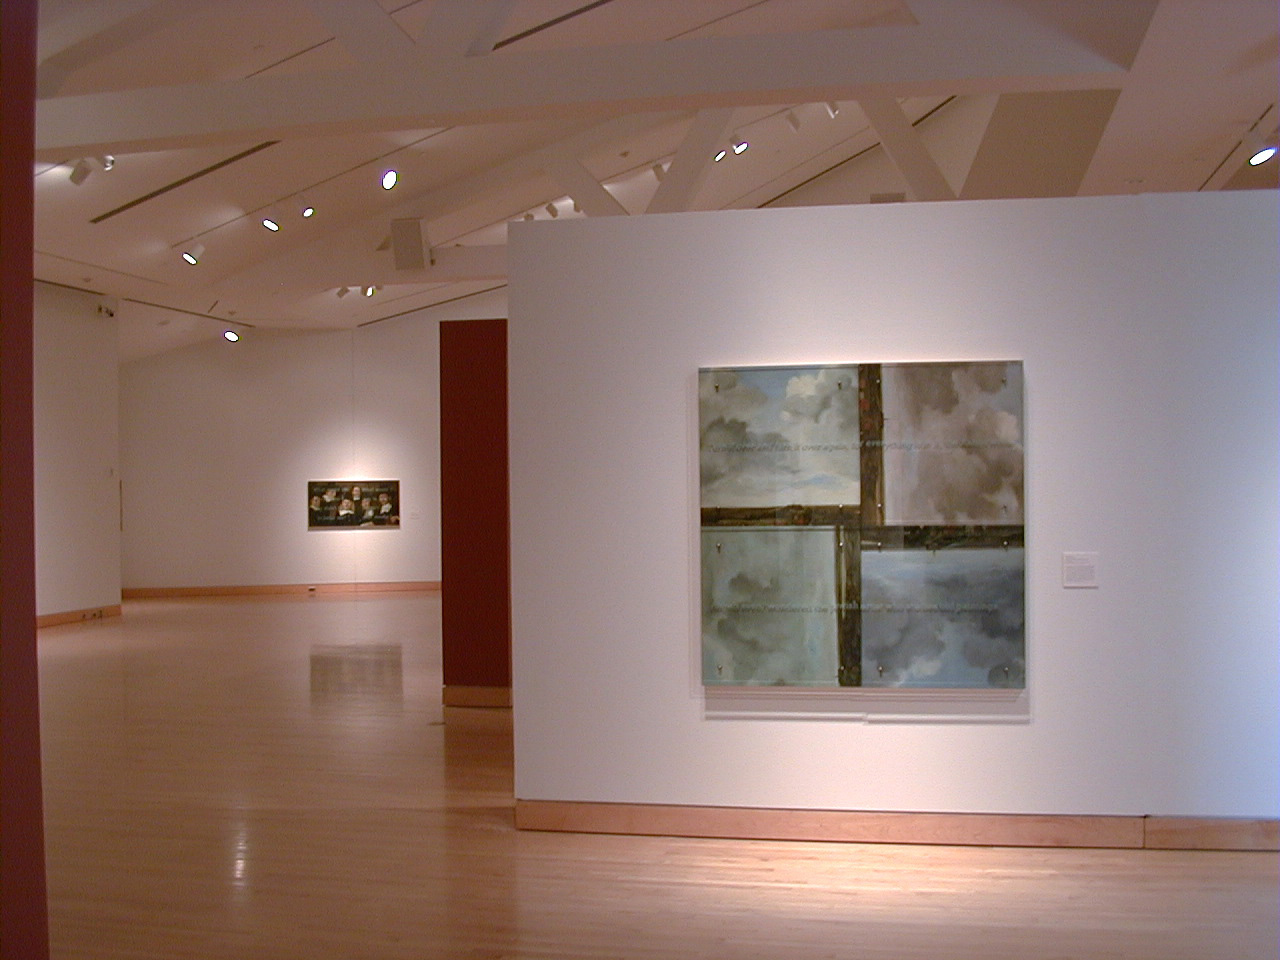 Ken Aptekar: Painting Between the Lines, Kemper Museum of Contemporary Art, Kansas City, MO